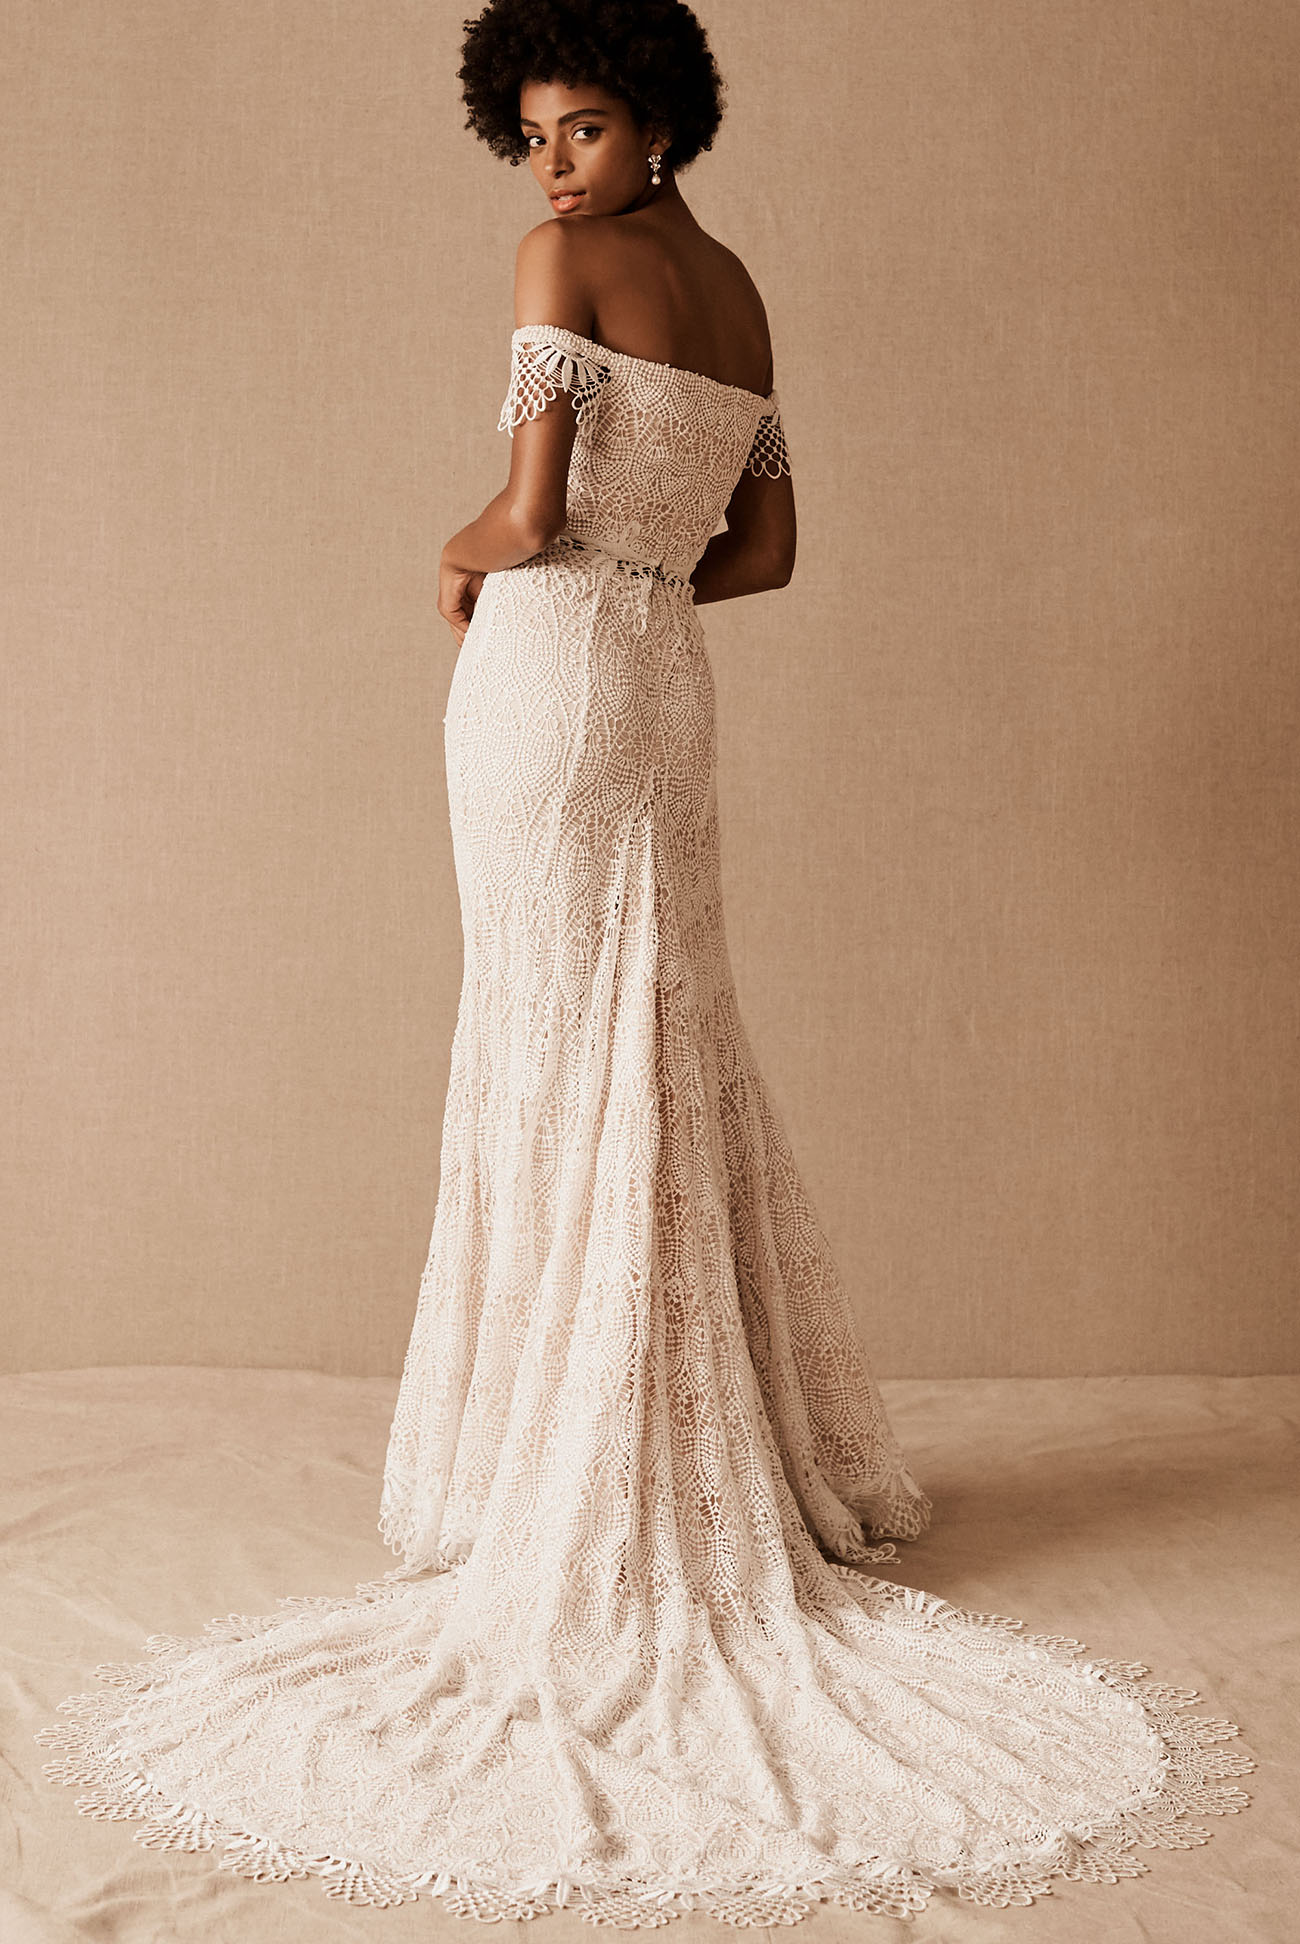 Daughters of Simone Ophelia Gown from BHLDN